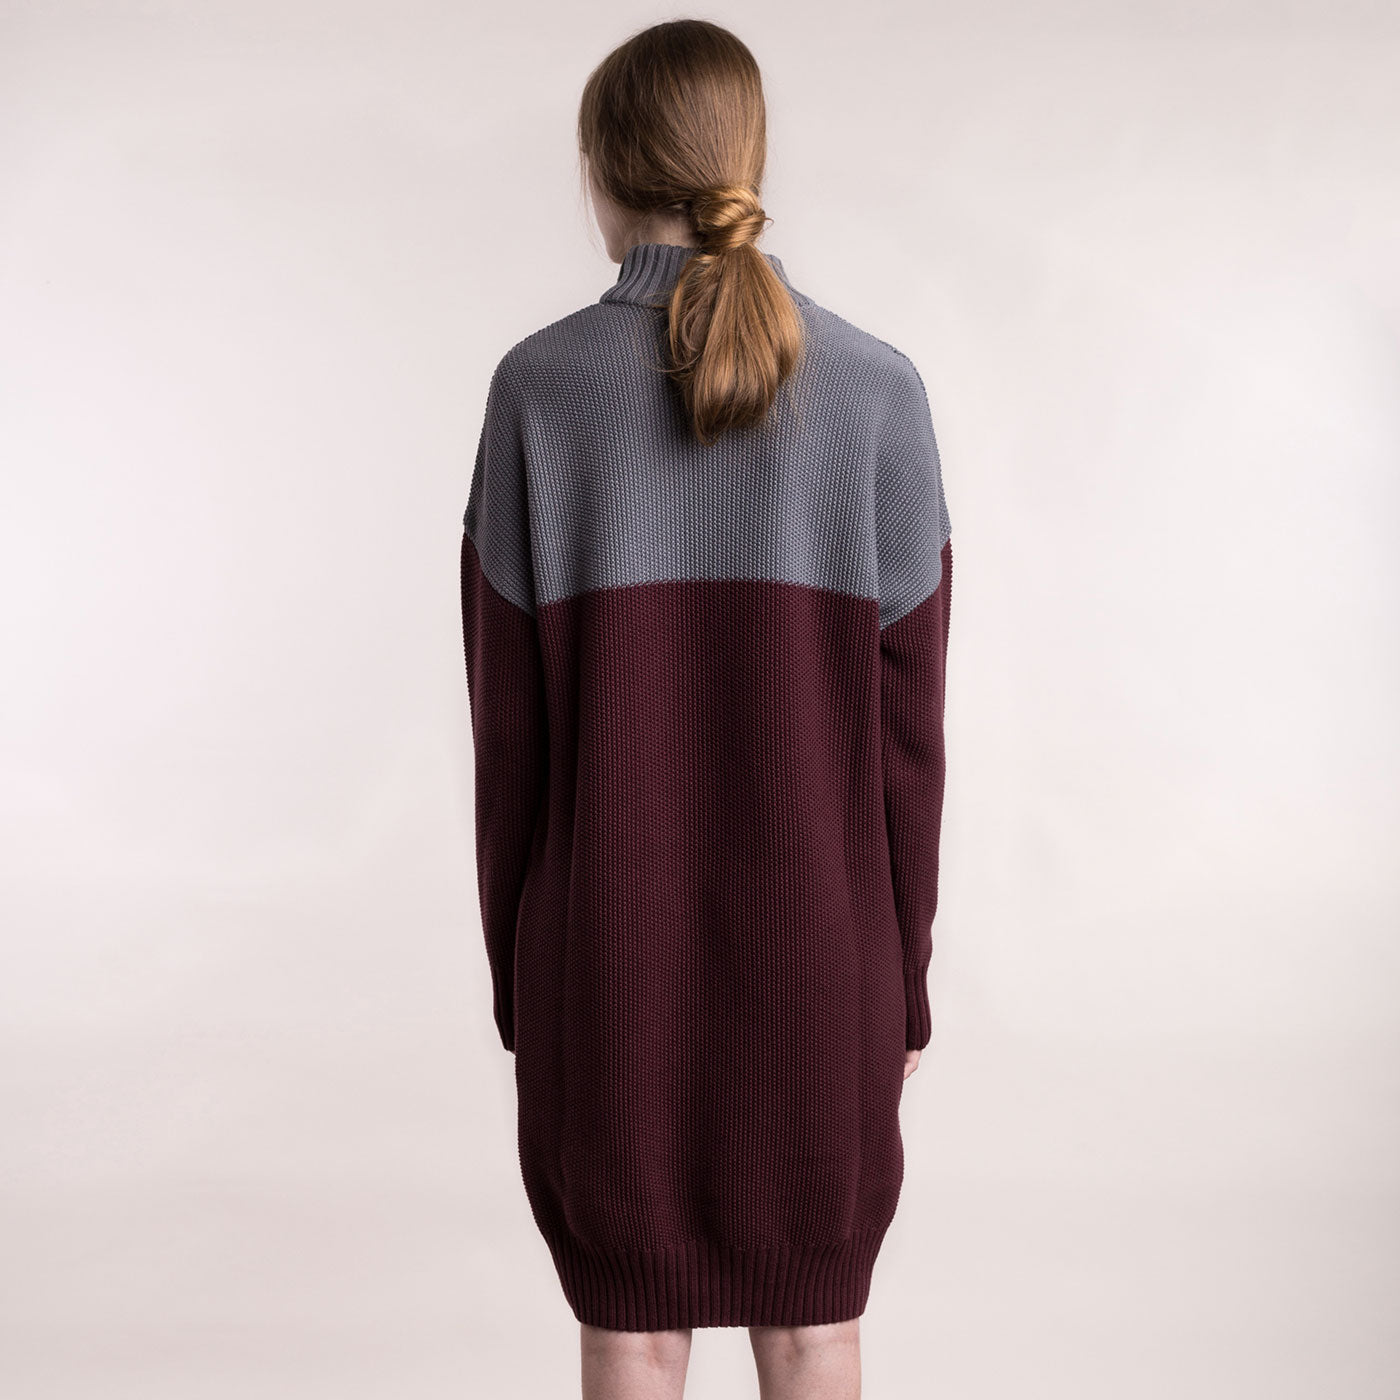 The model wears a grey and burgundy, sustainable organic cotton, knitted double-colour dress, back view.